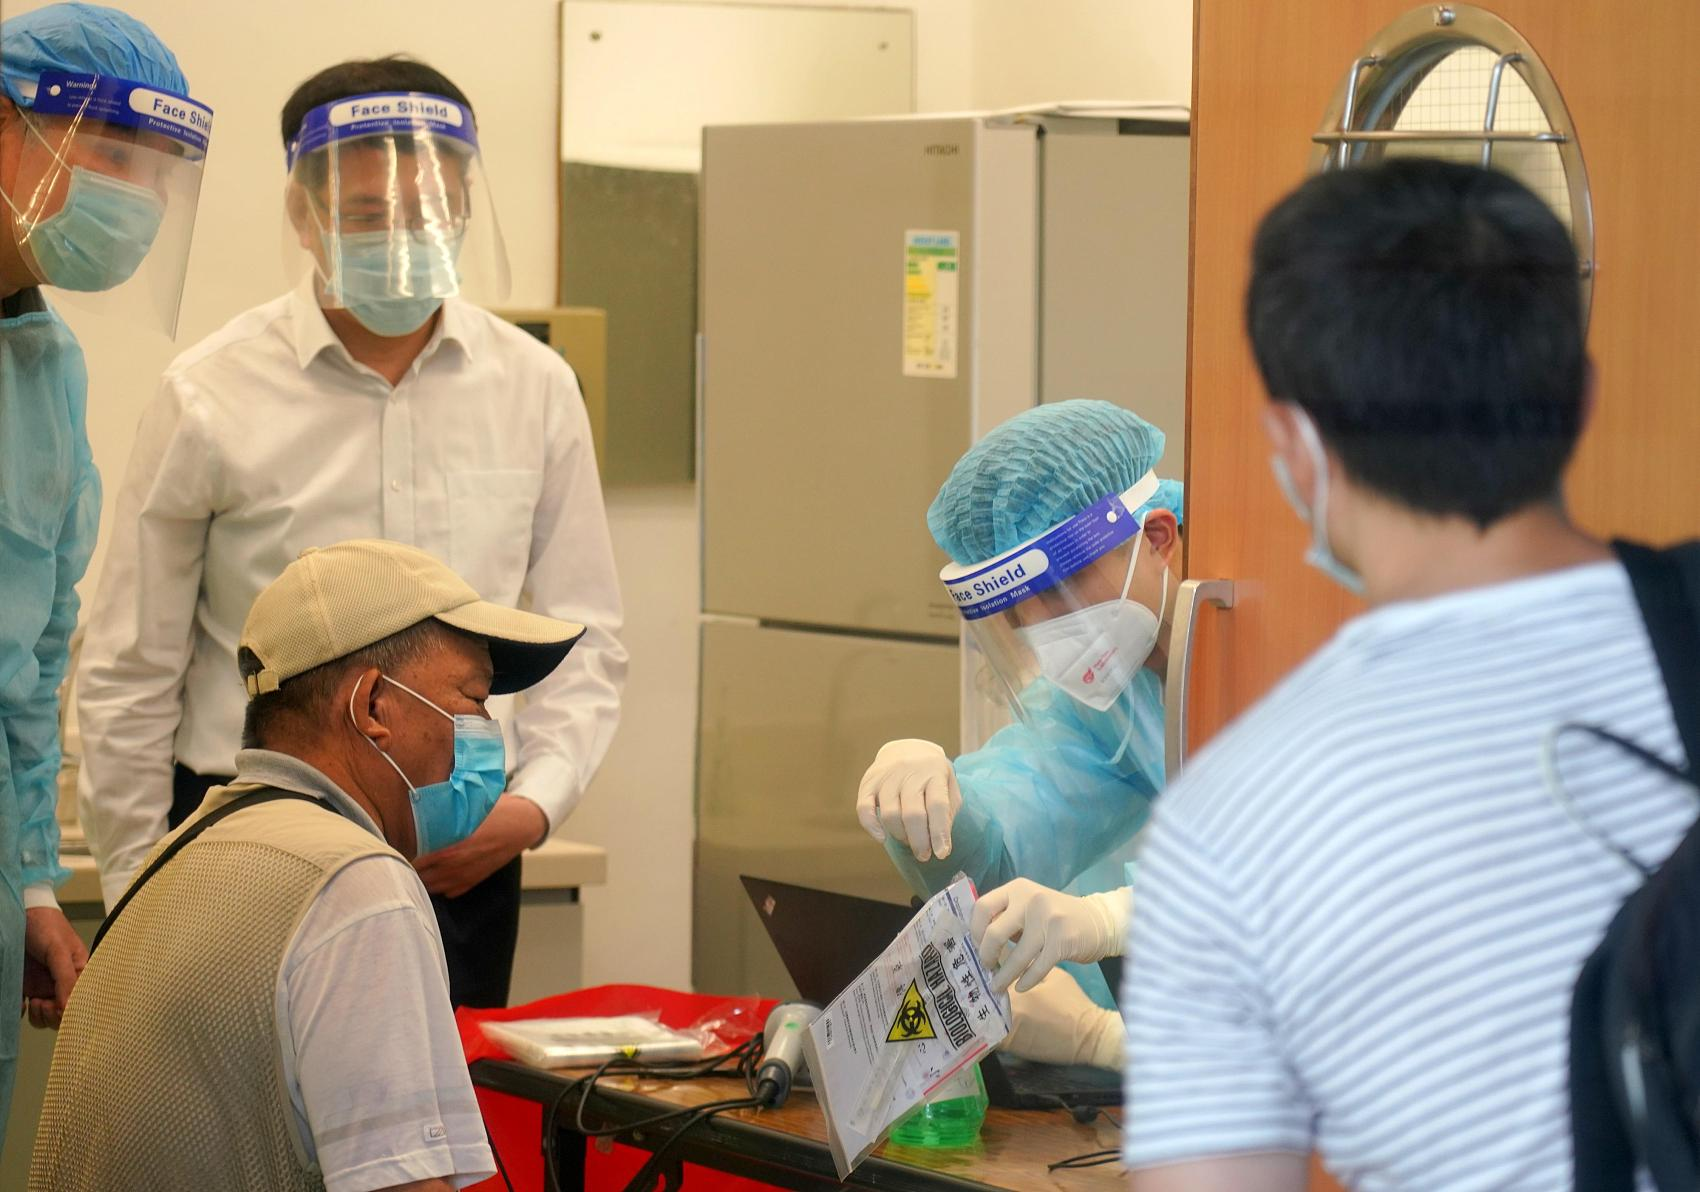 HK sees lowest virus cases since July 3